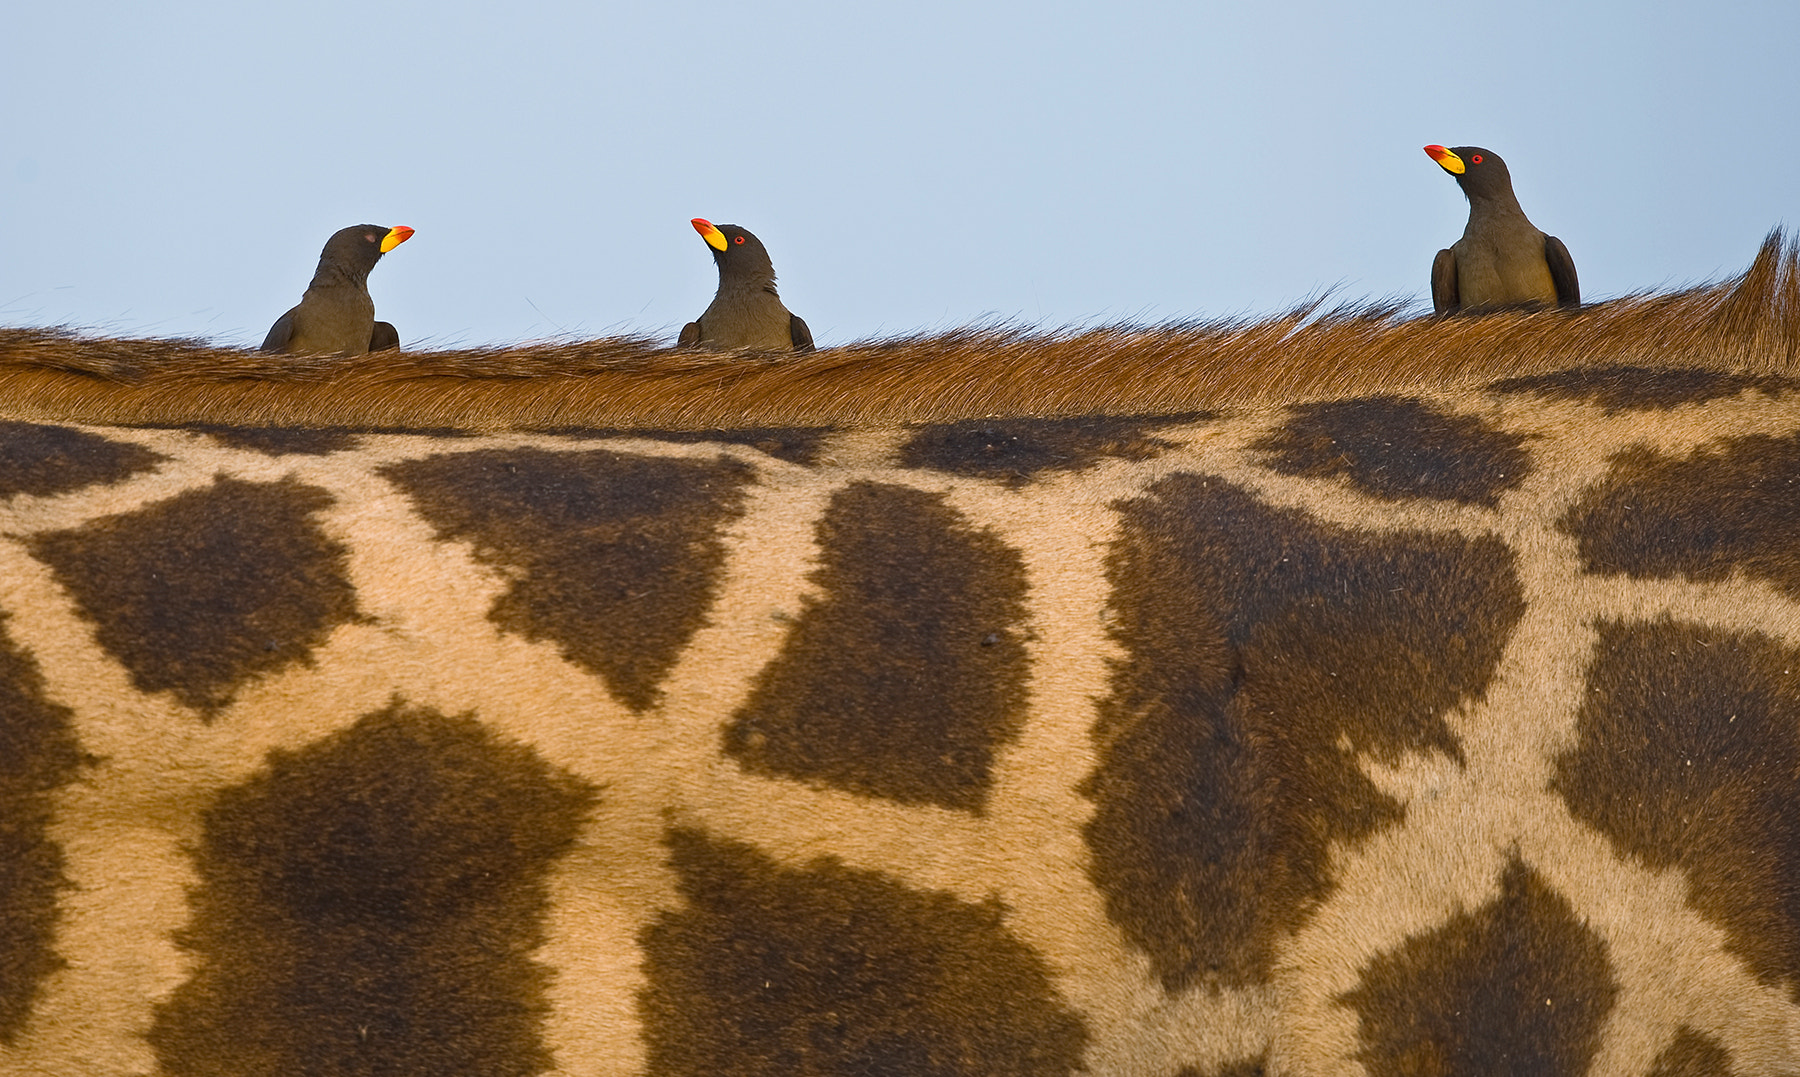 Photograph Oxpeckers @ the bar. by Marc MOL on 500px